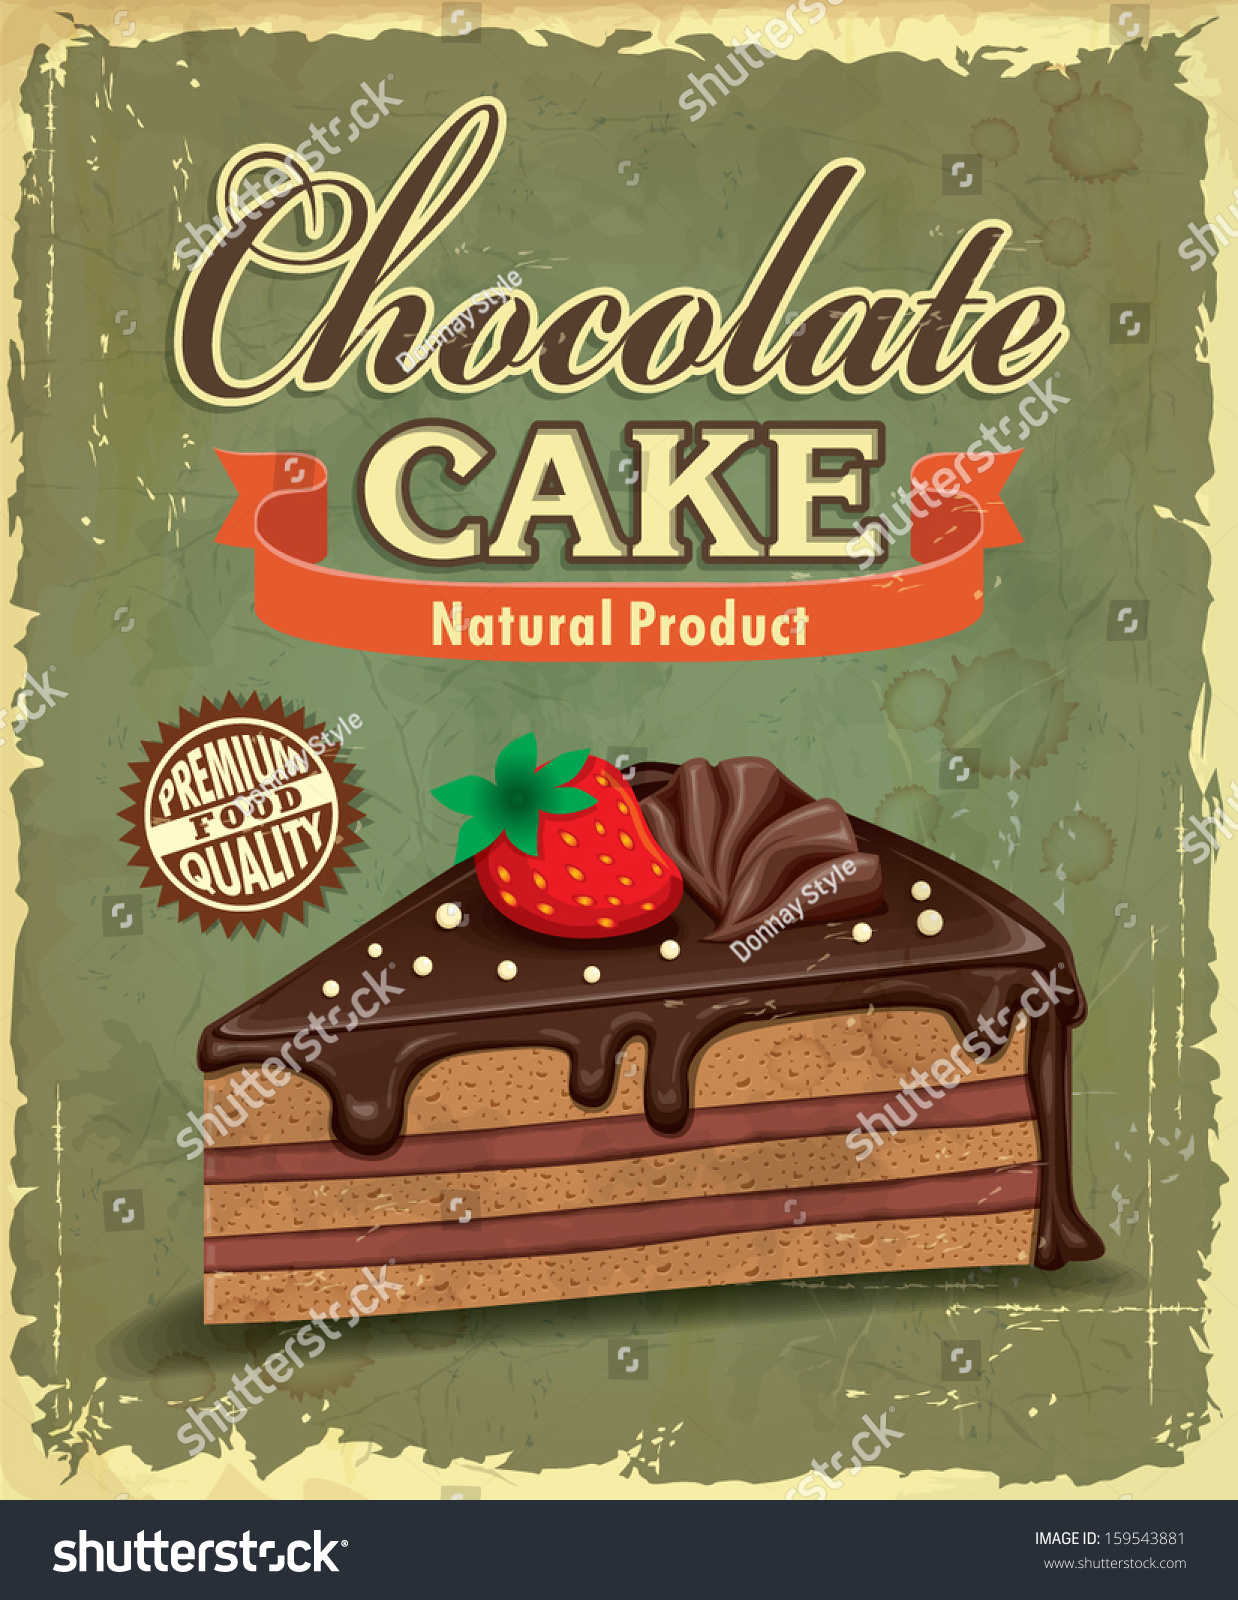 Vintage Chocolate Cake Poster Design Stock Vector